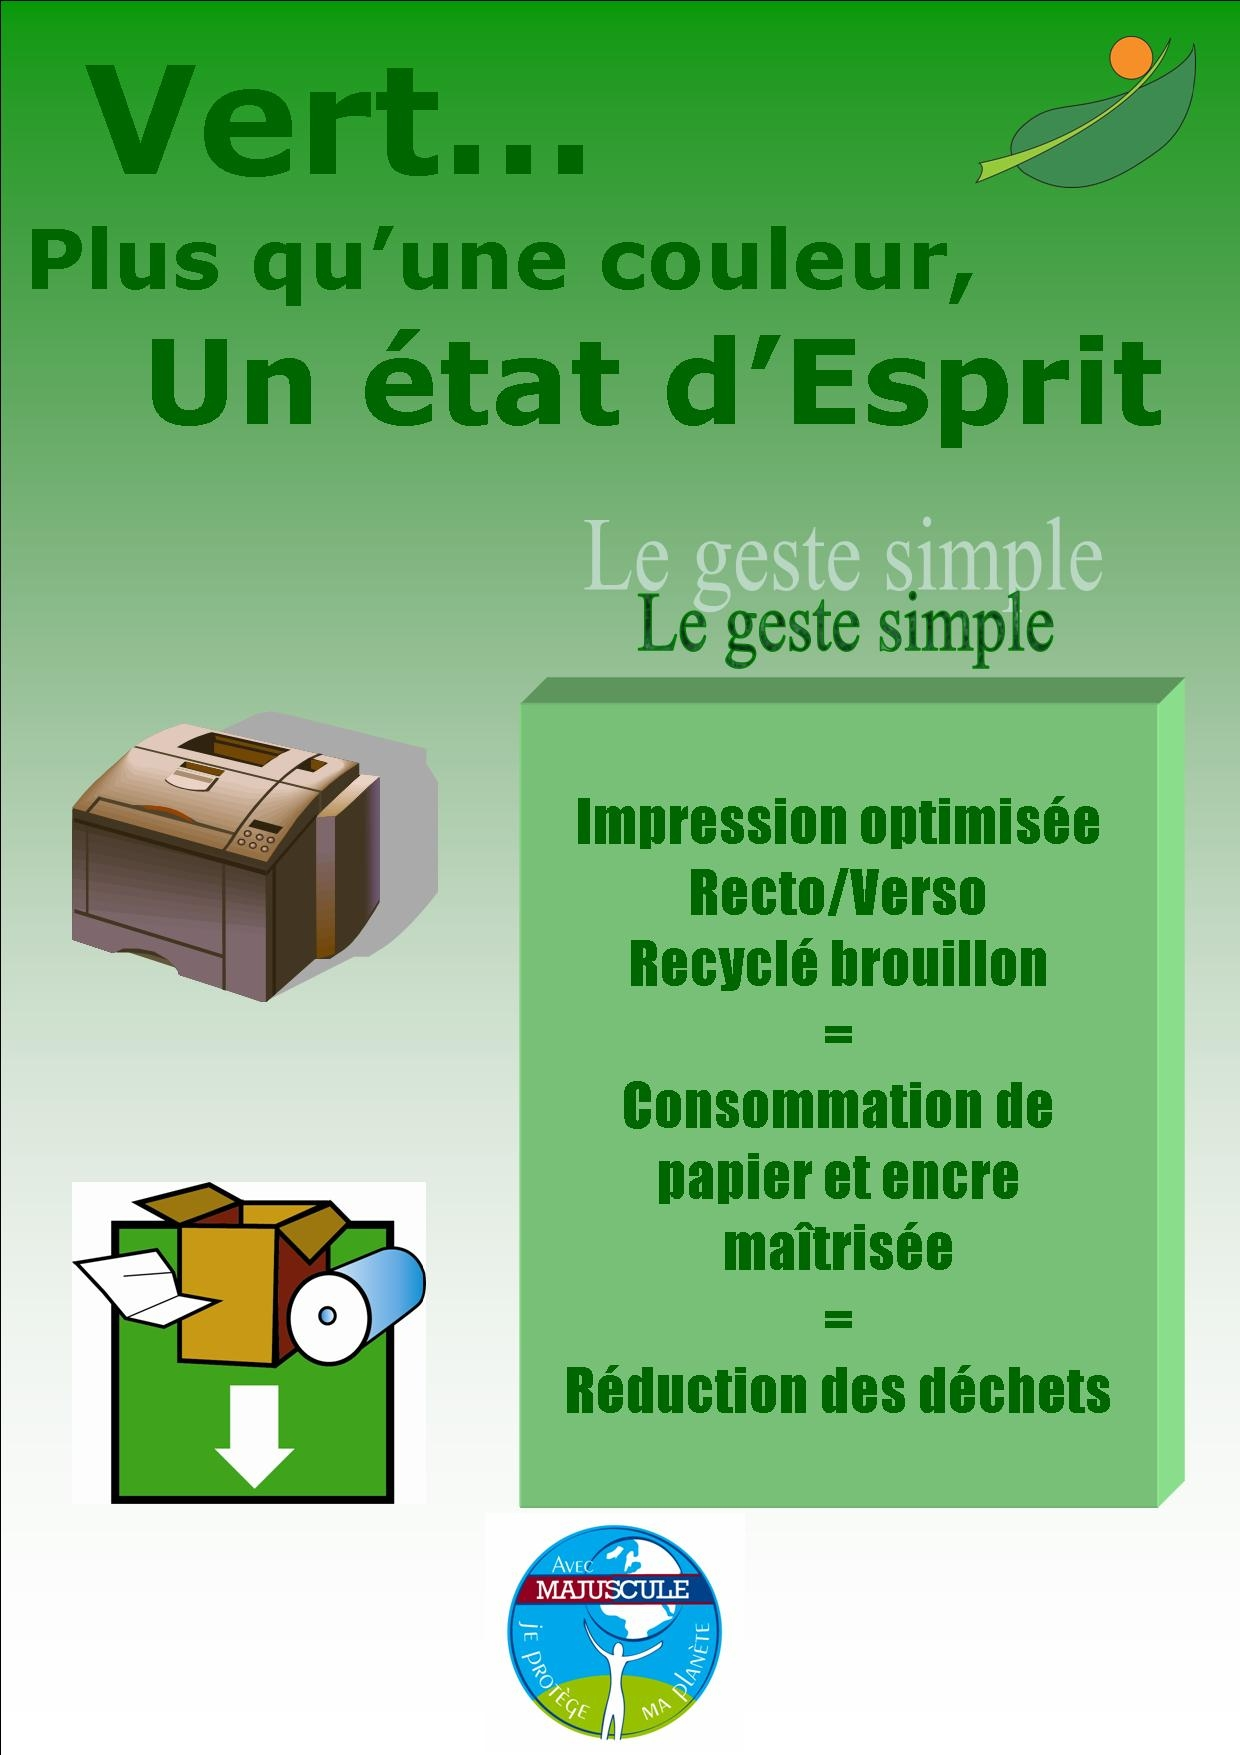 Le geste simple Impression optimise1